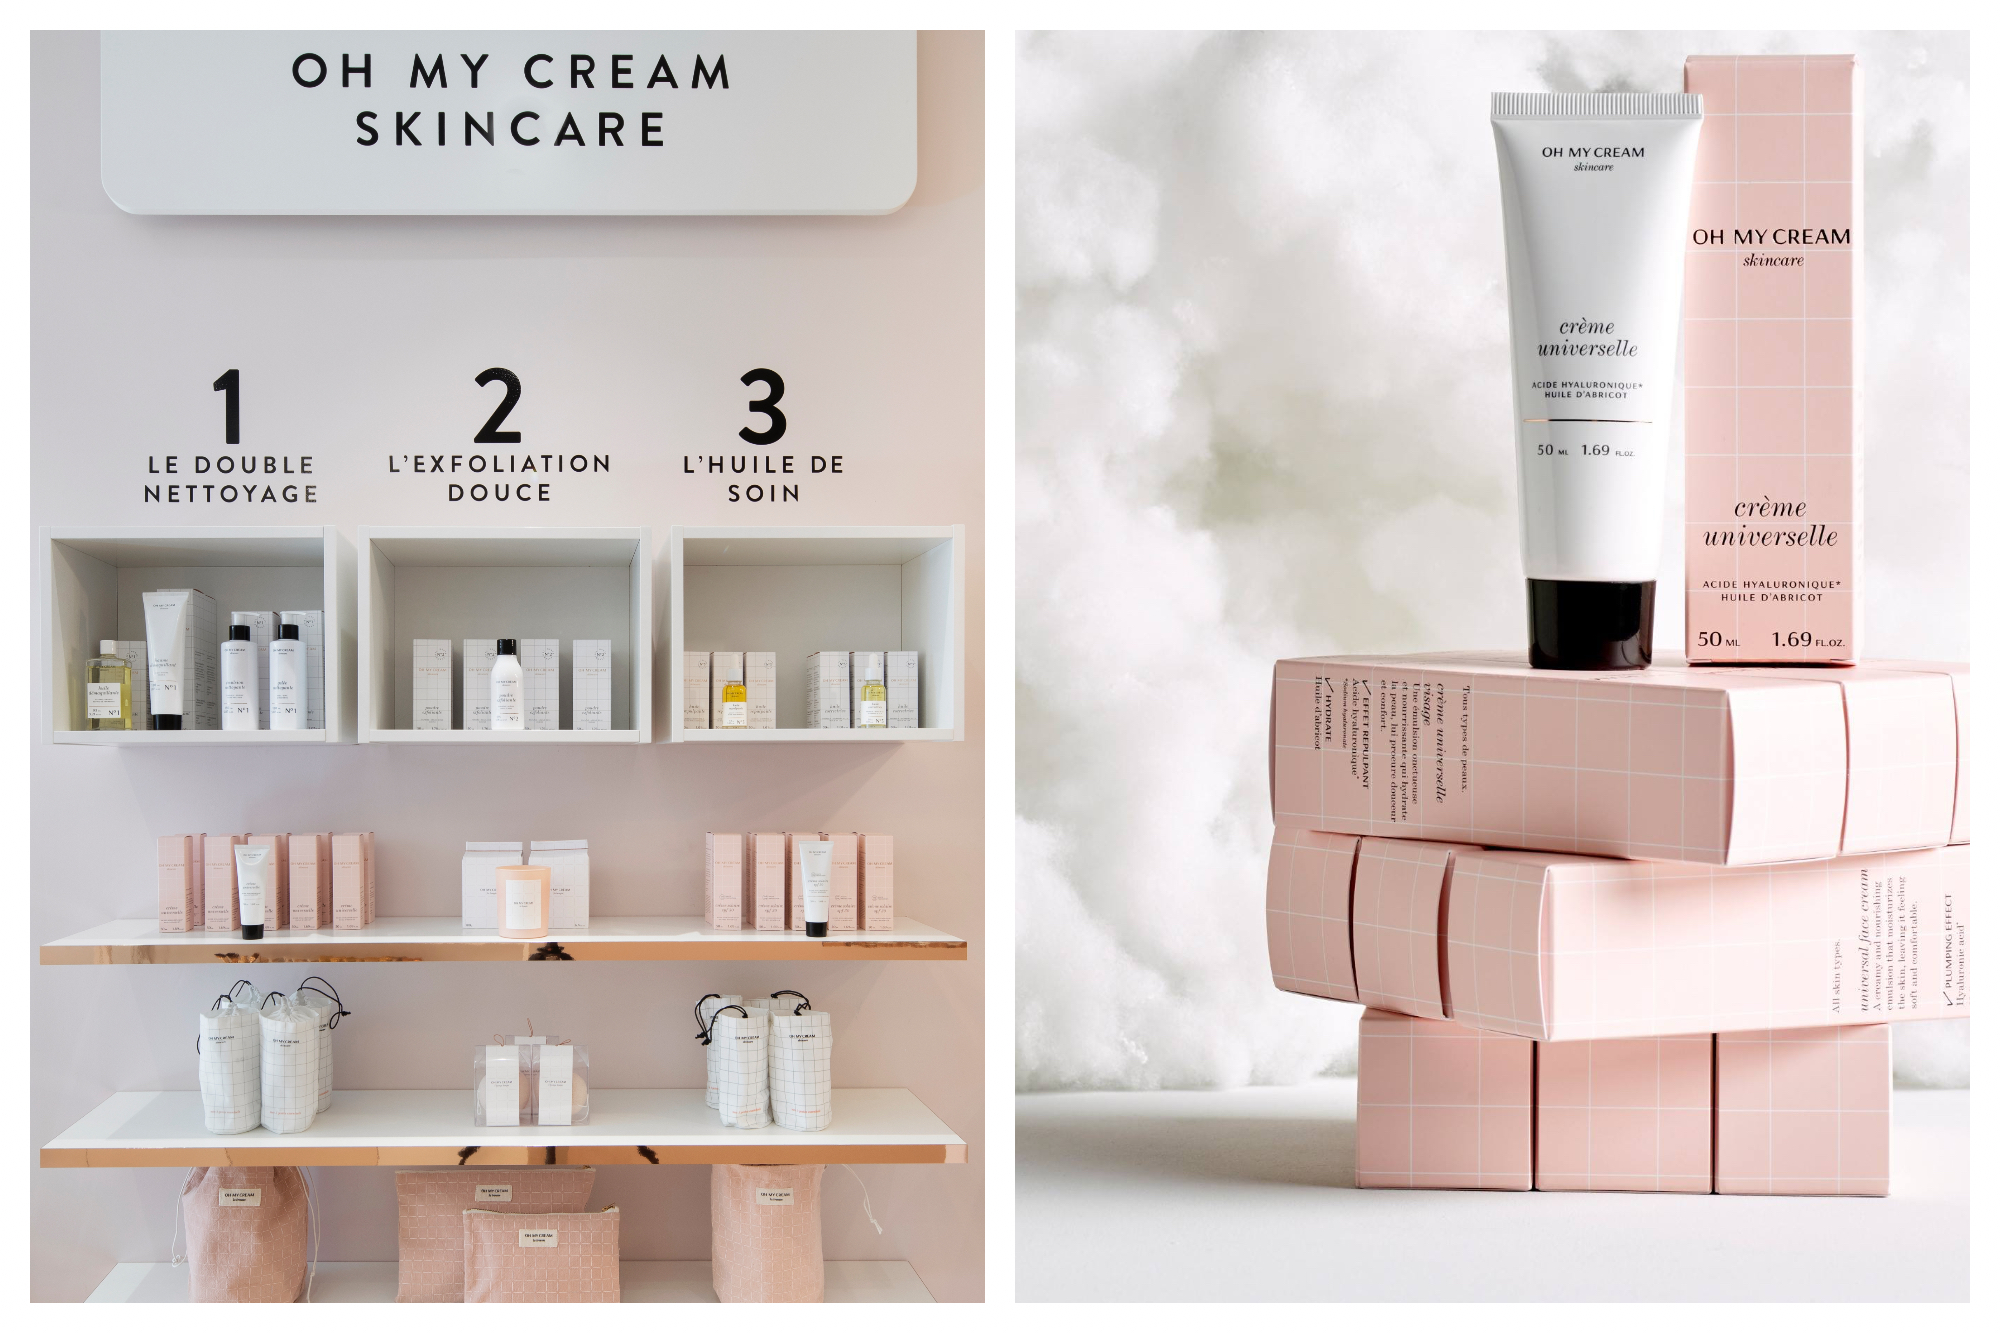 On the left is a display wall from the interior of one of Oh My Cream' Parisian stores, with a number of shelves with neatly displayed products. On the right is a stack of  several pink boxes of their 'Crème Universelle' against a white cotton background.